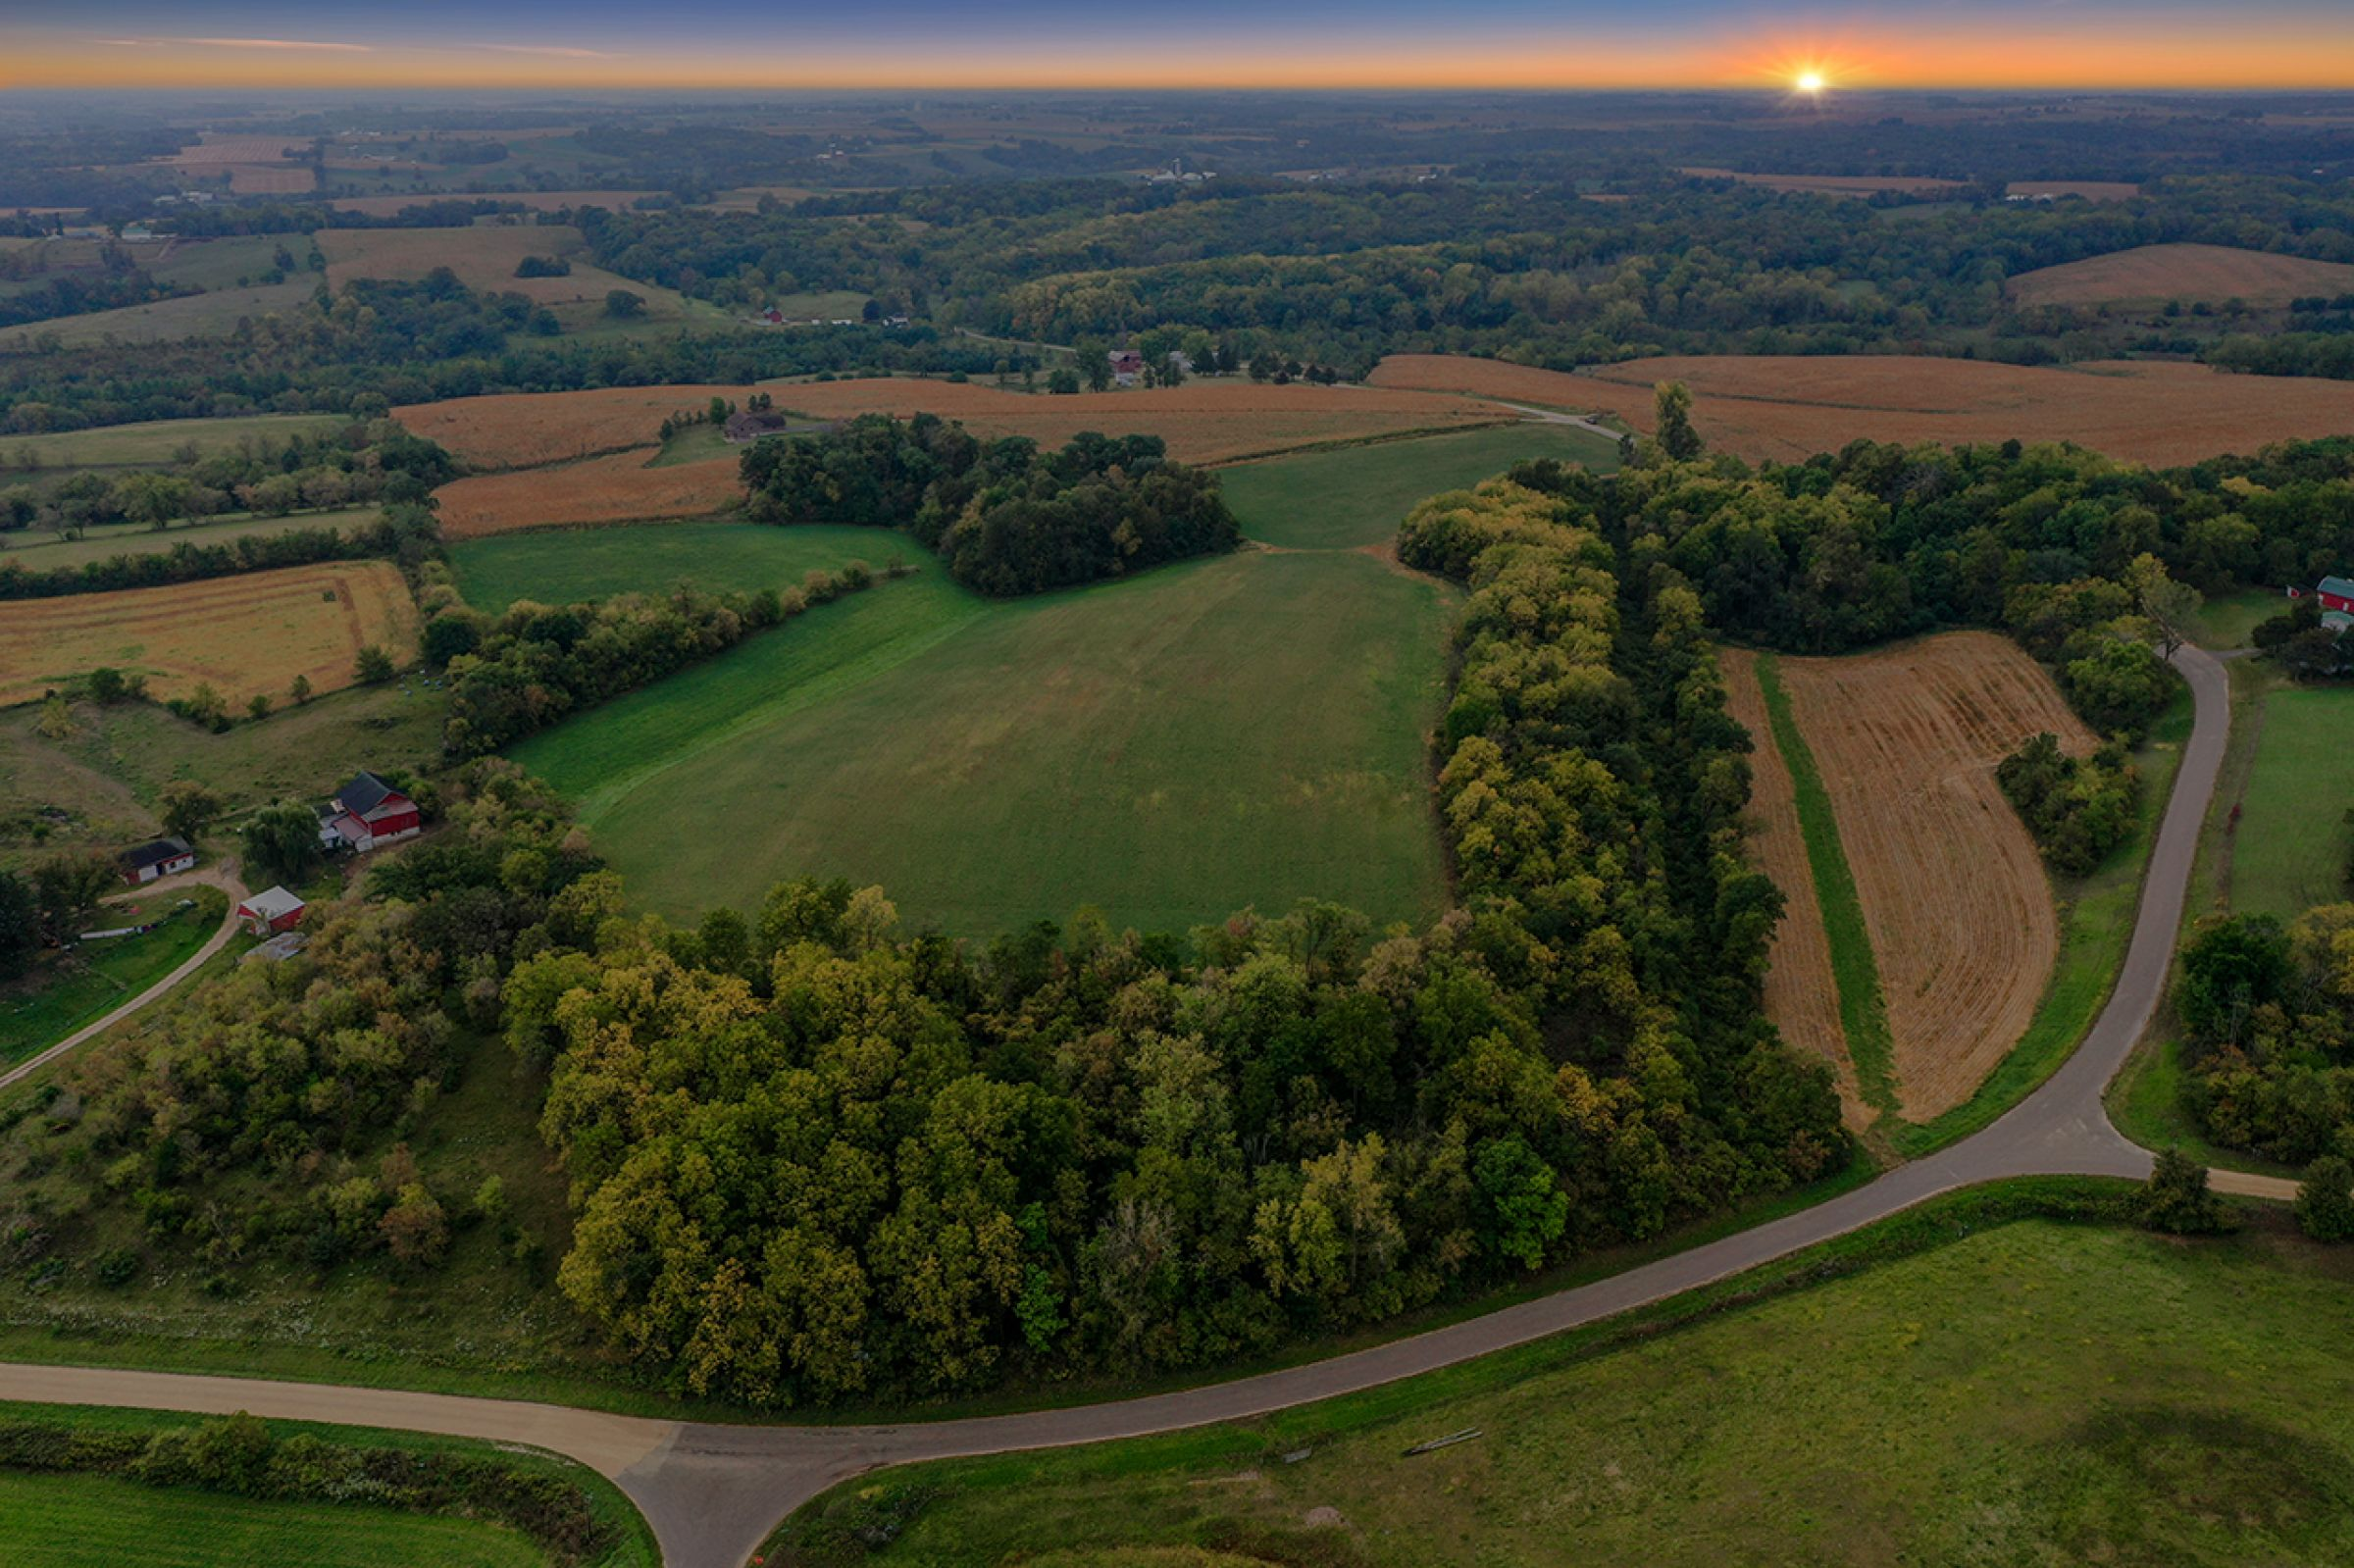 auctions-land-lafayette-county-wisconsin-138-acres-listing-number-15758-5-2021-09-21-155737.jpg